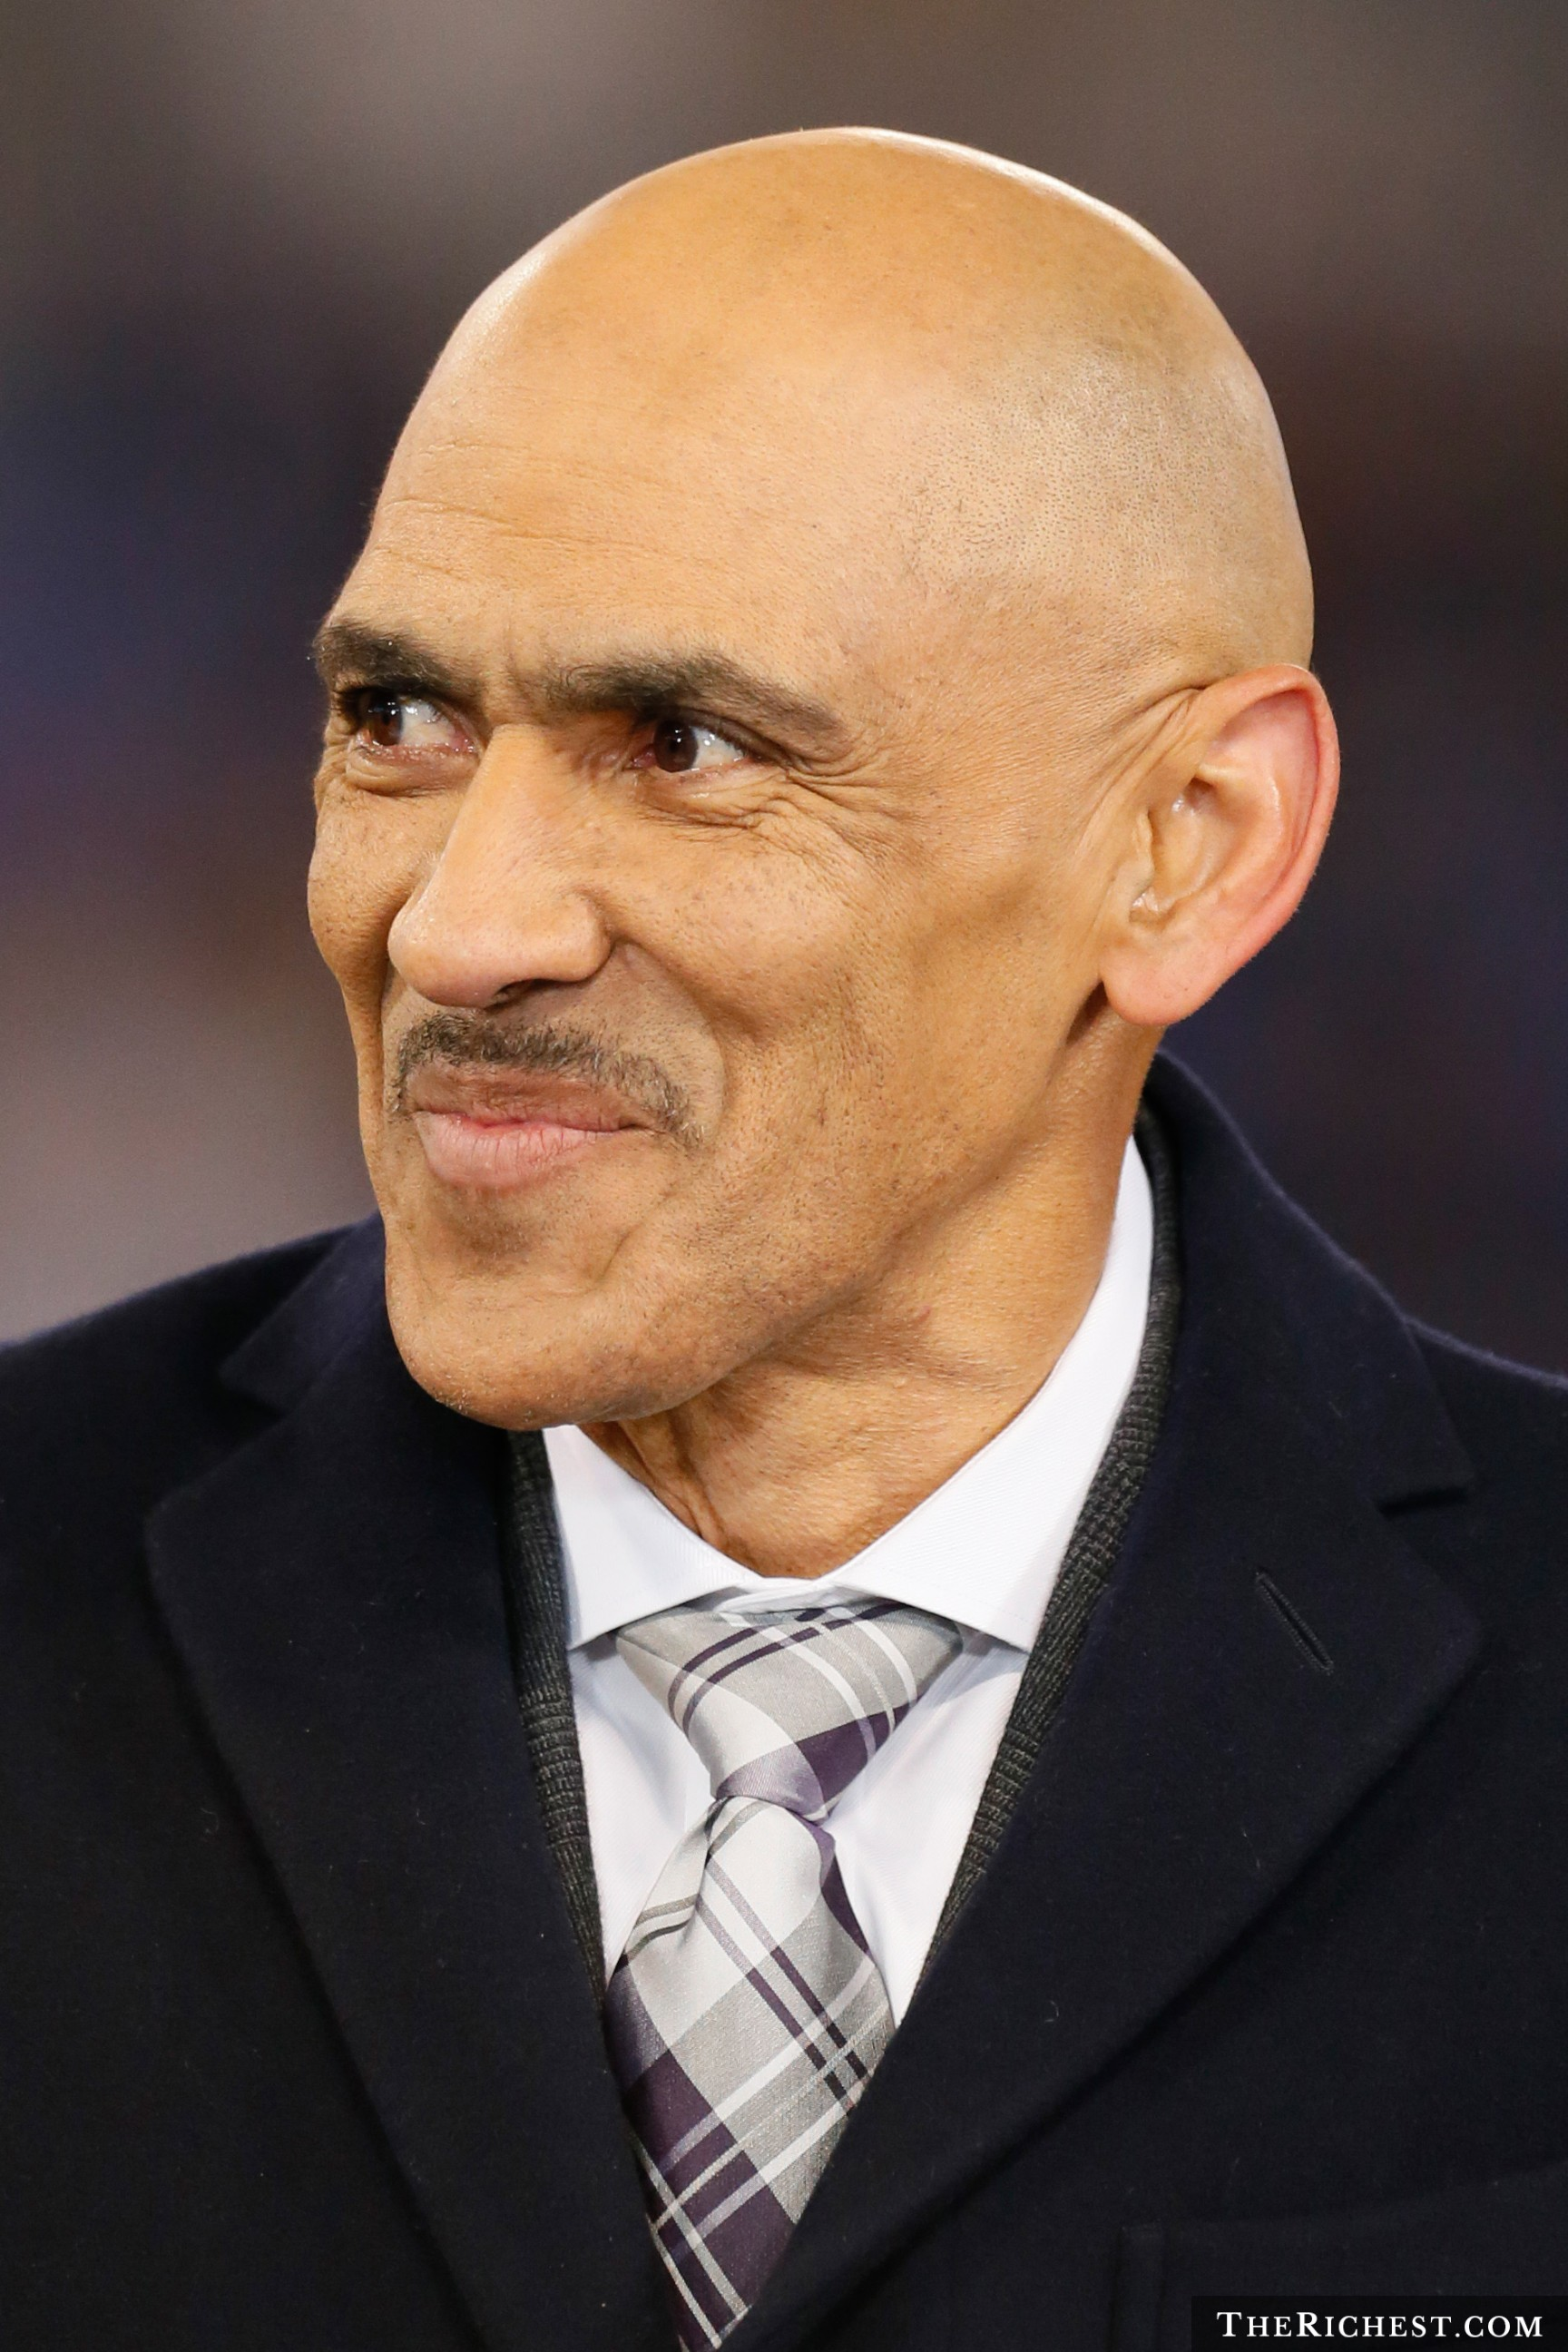 Some speculate that Dungy's disapproval of homosexuality stems from his uncanny resemblance to E.T. with AIDS.